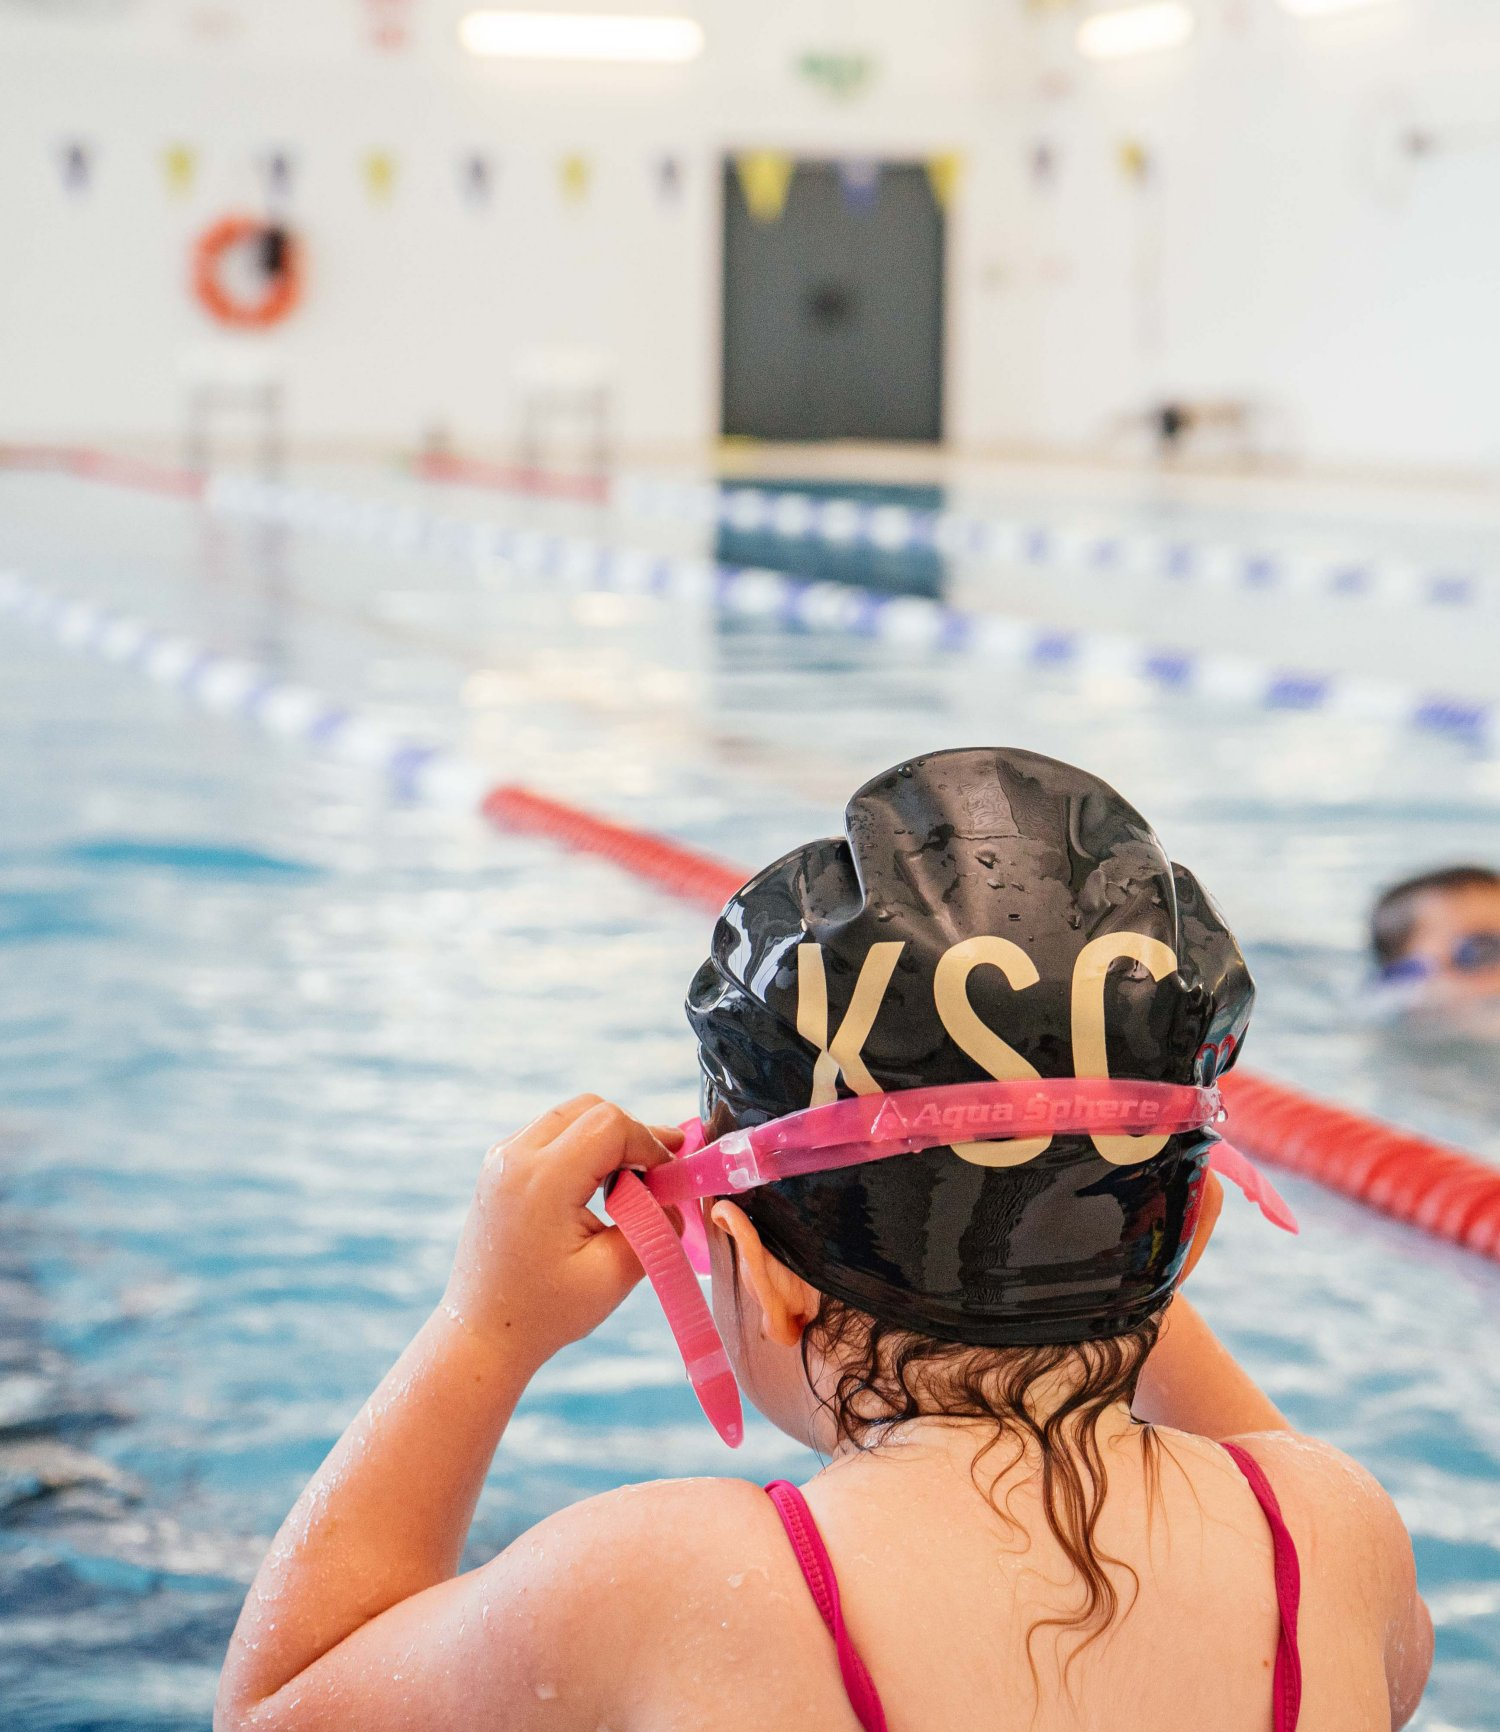 We offer intensive swim clinics in South West London for children aged 3 and over. - We love swimming and we love teaching swimming. We believe that, as well as being an essential life skill, swimming can be rewarding, therapeutic and of course fun!